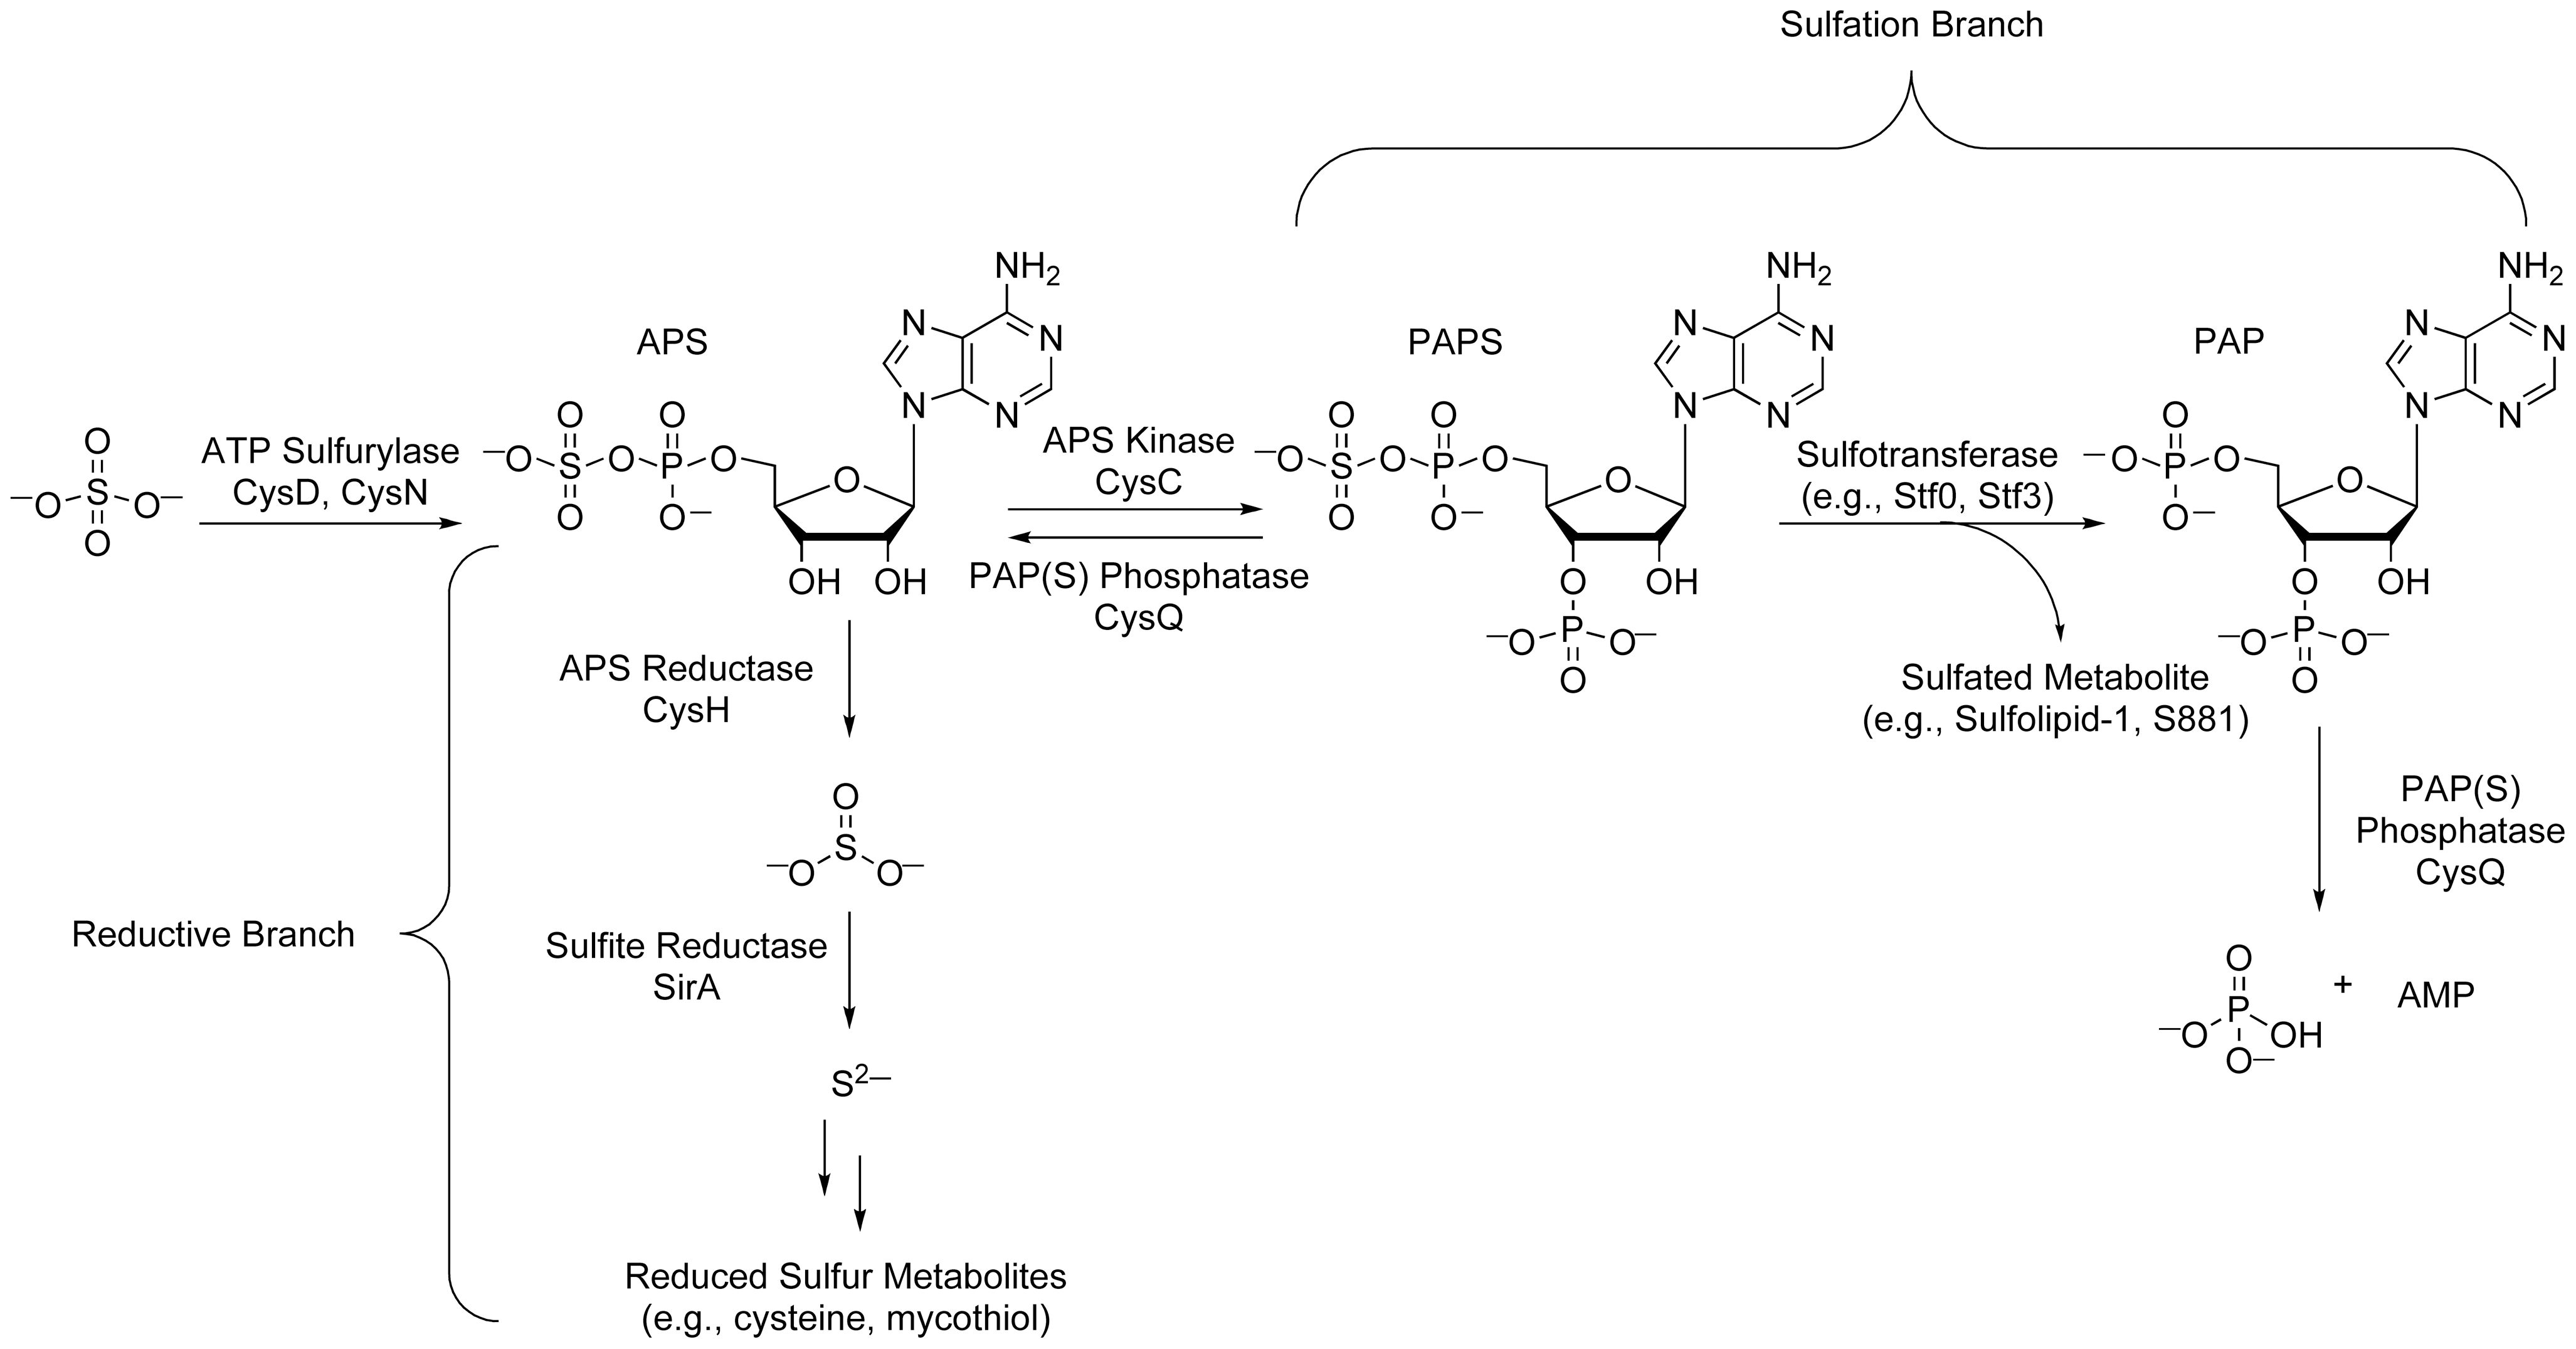 The sulfate assimilation pathway of <i>Mtb</i>.